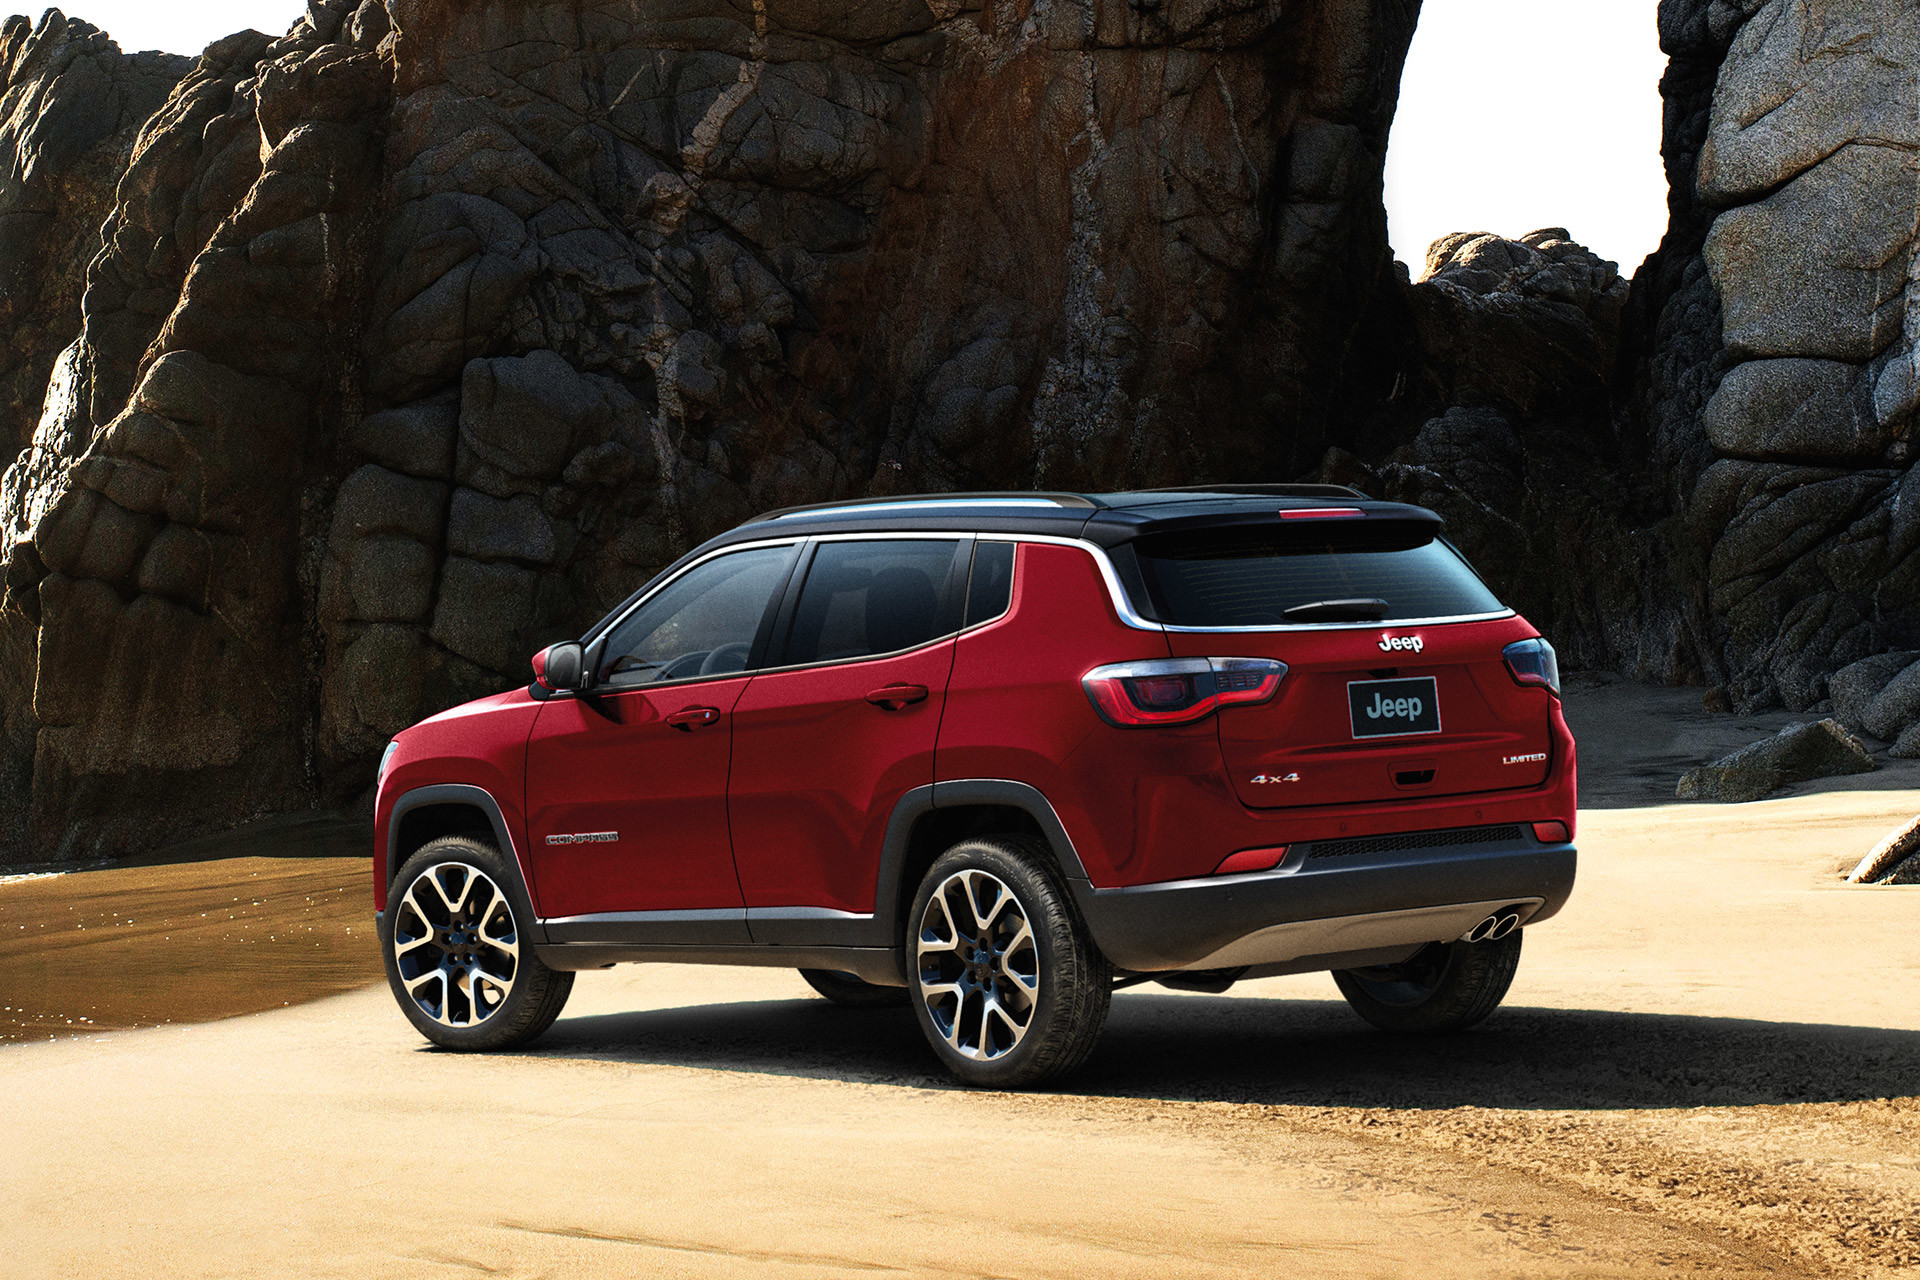 Red 2020 Jeep Compass parked on a beach with large boulders in the background.